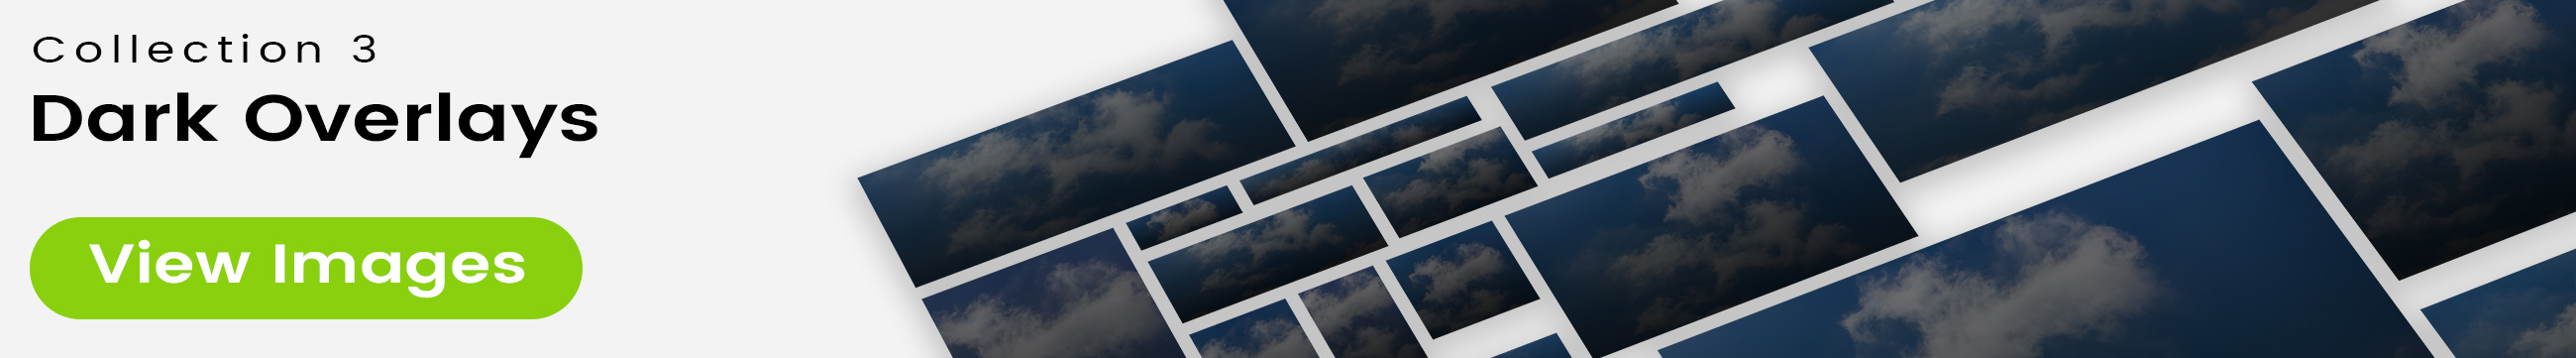 See 25 bonus images included with clouds stock image 9472. Collection 3 of 4 features a dark overlay design.